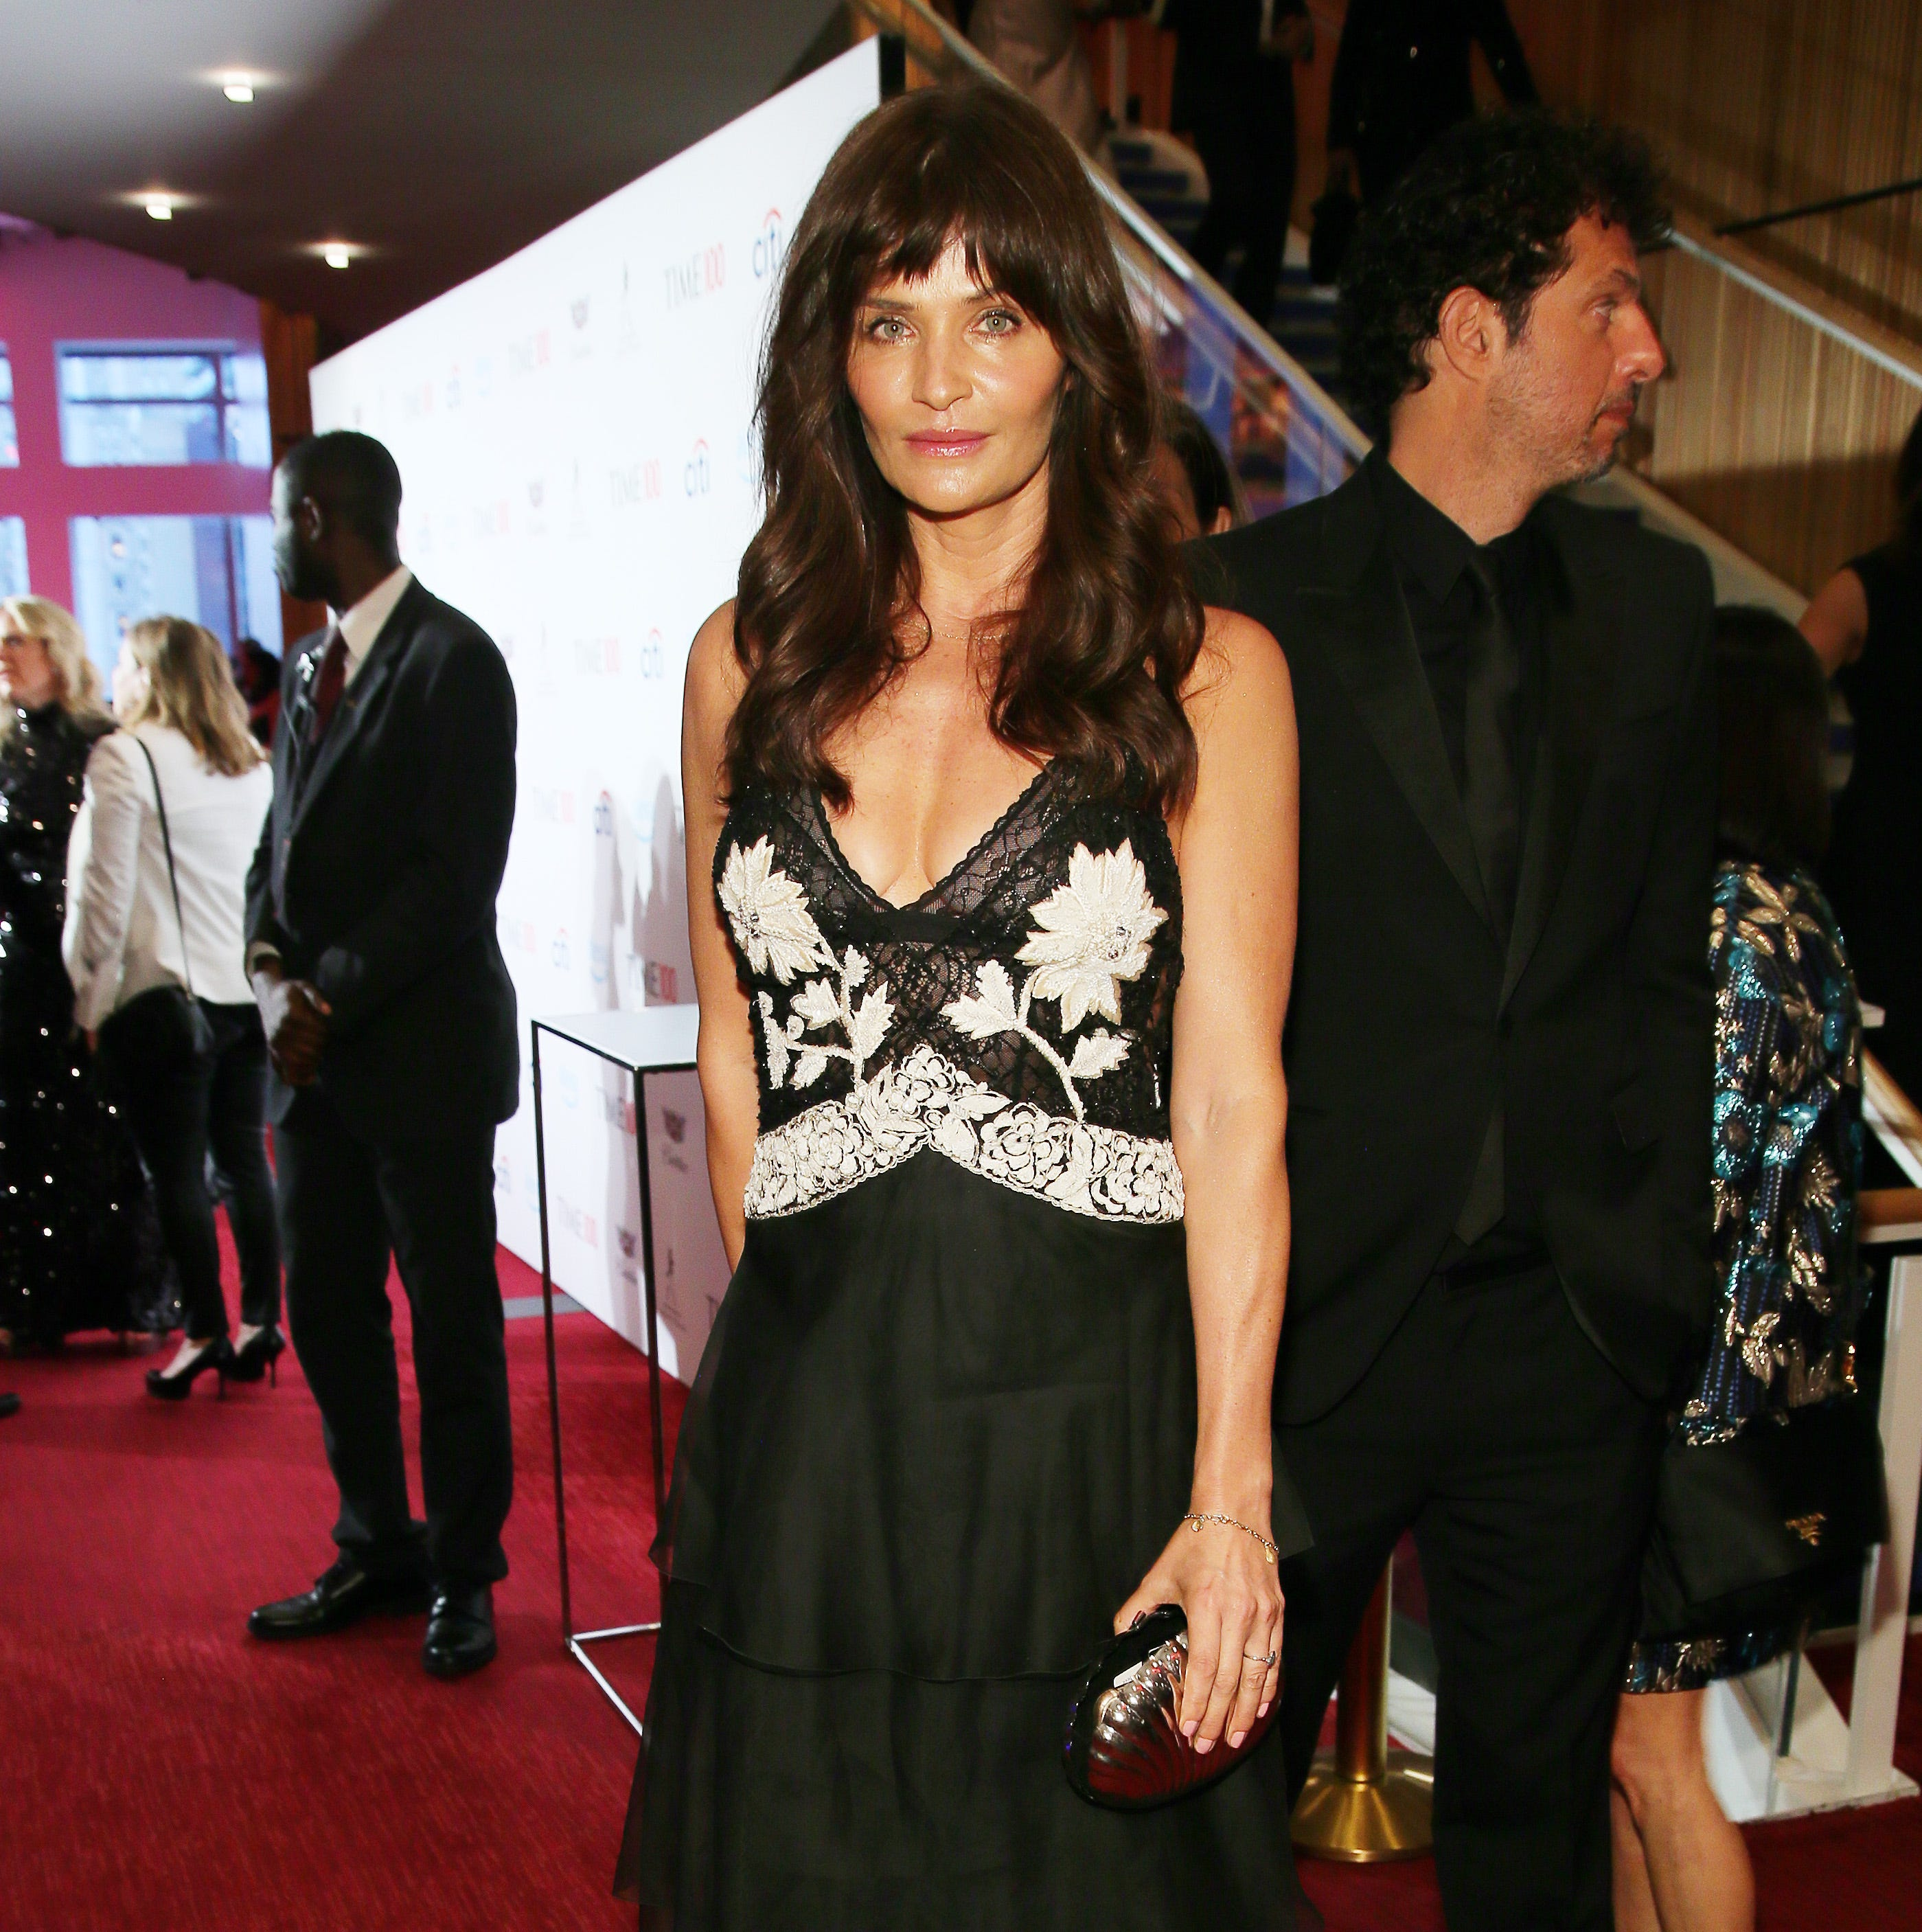 Helena Christensen attends the TIME 100 Gala 2019 Cocktails at Jazz at Lincoln Center on April 23, 2019 in New York City.